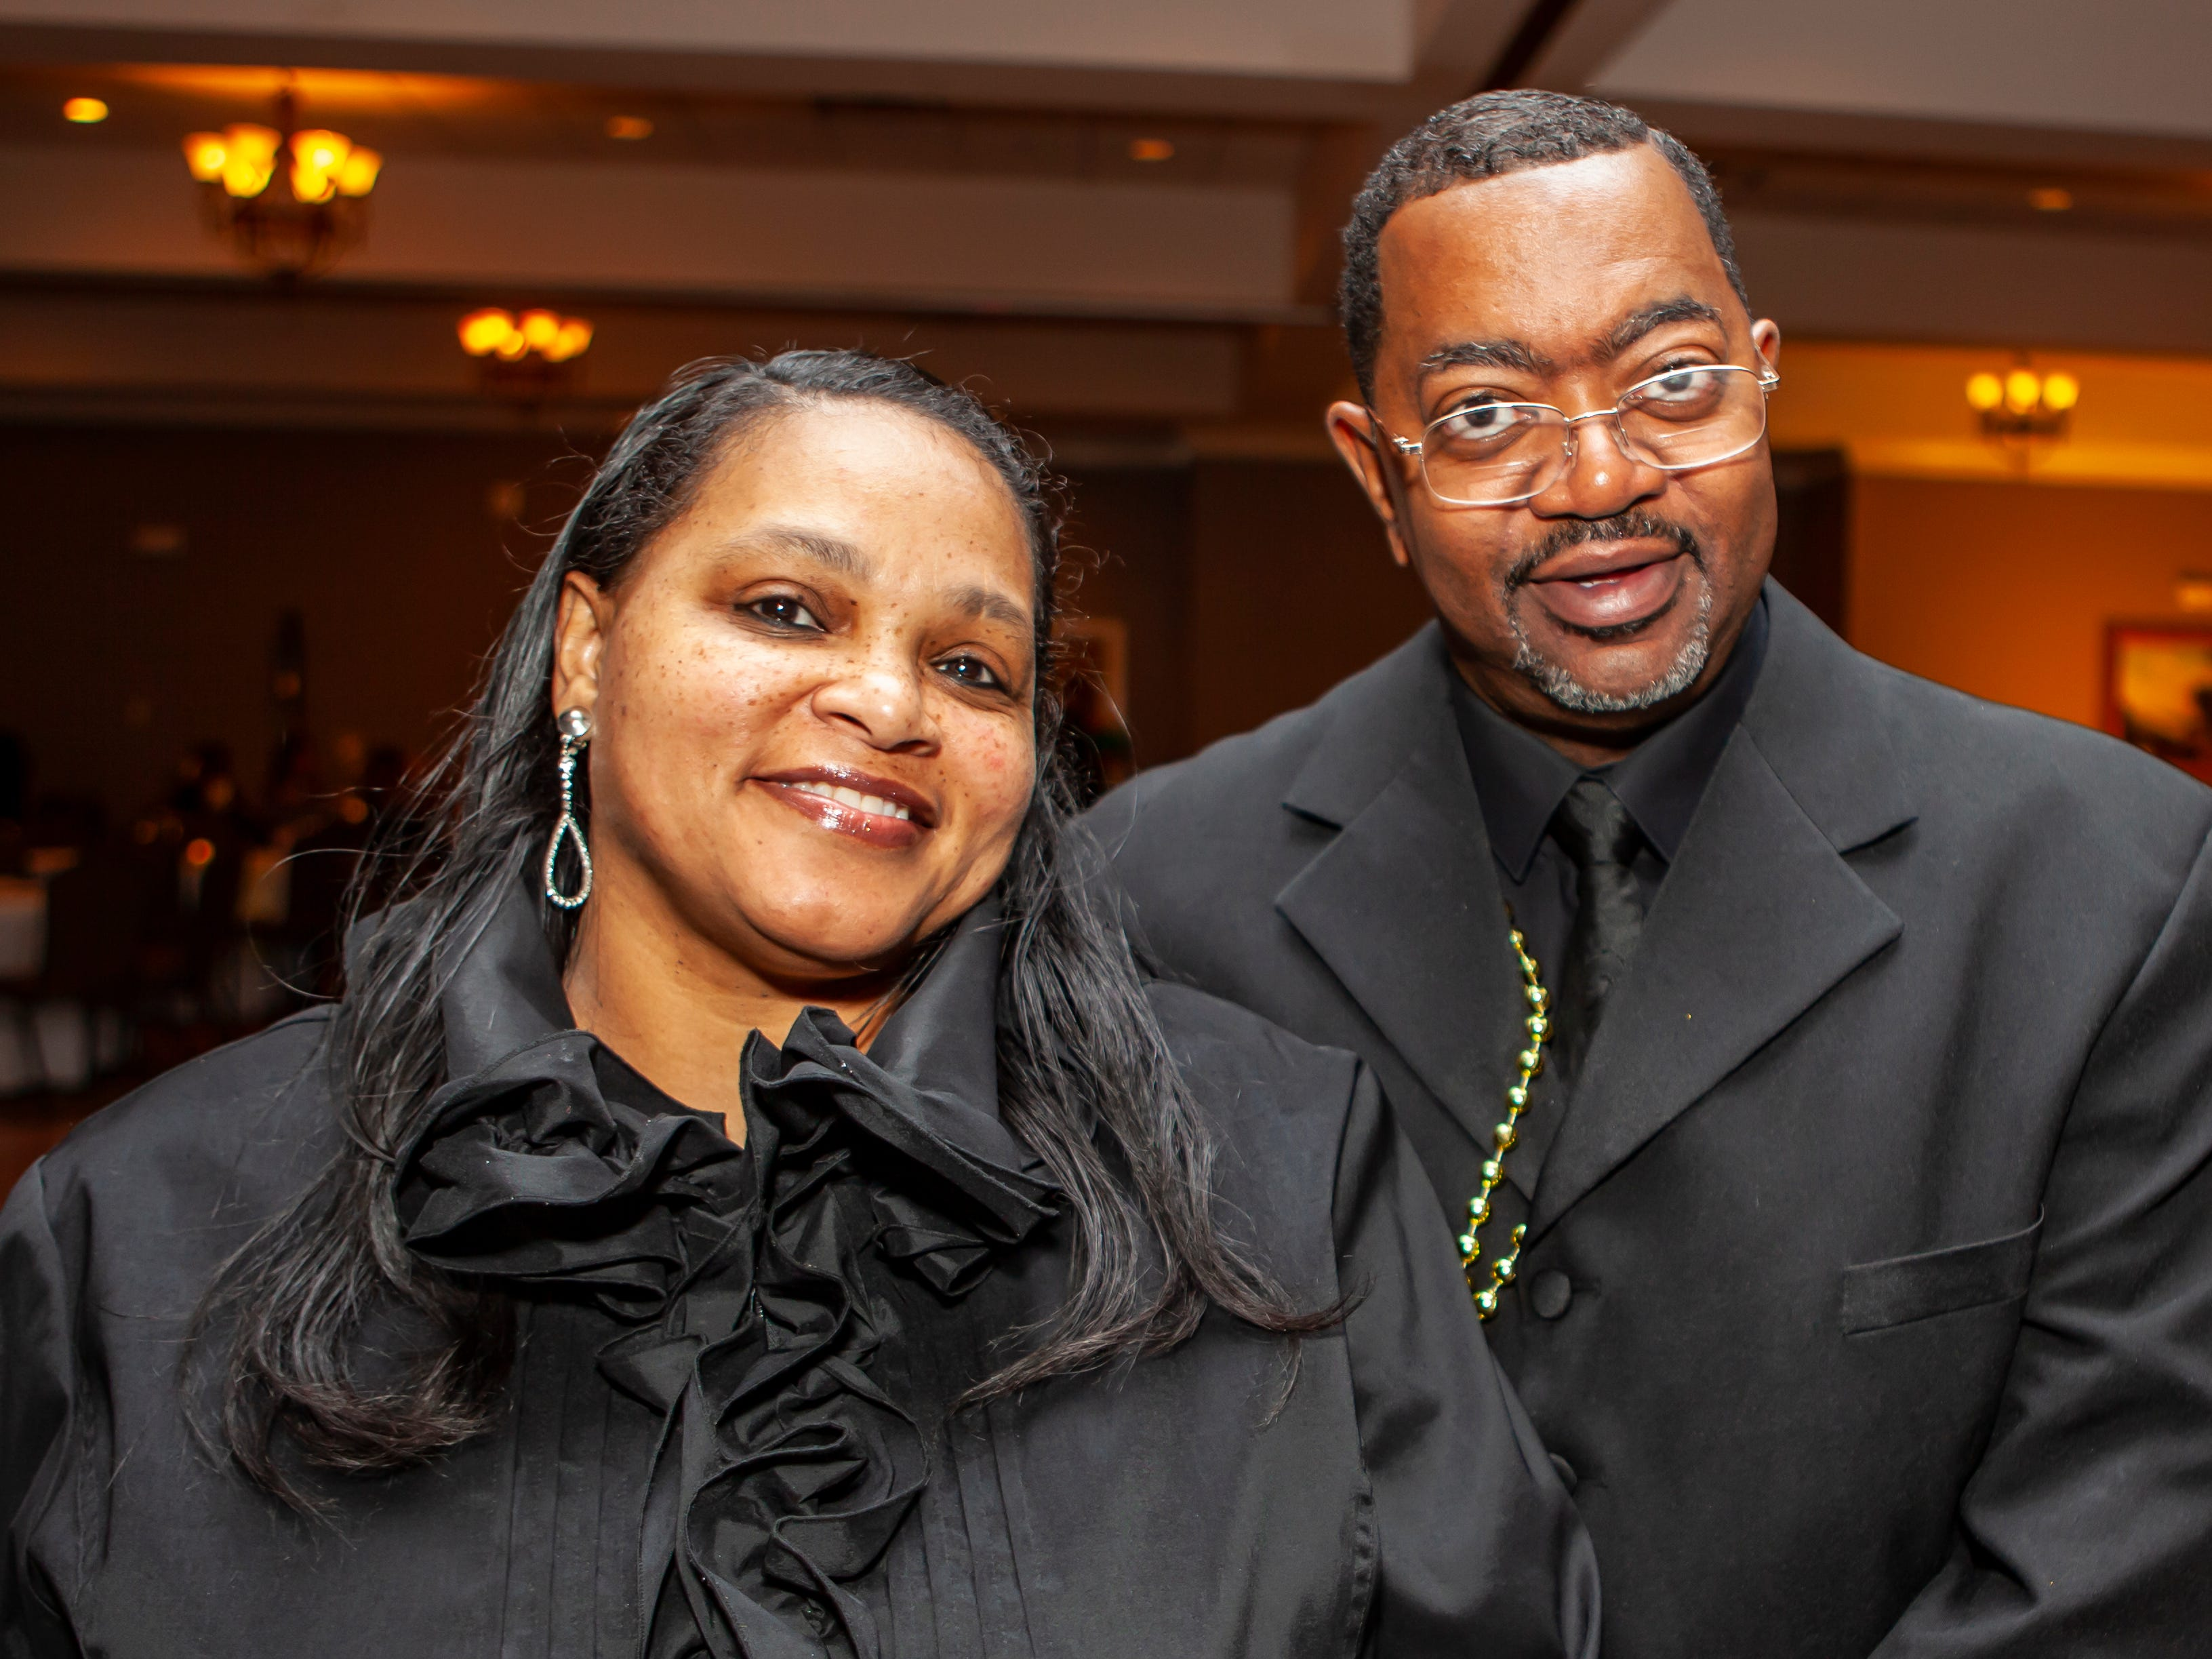 Carla and Michael Cawthon at the Omega Psi Phi Mardi Gras party held Saturday, Feb. 9, 2018 at Stones River Country Club in Murfreesboro.